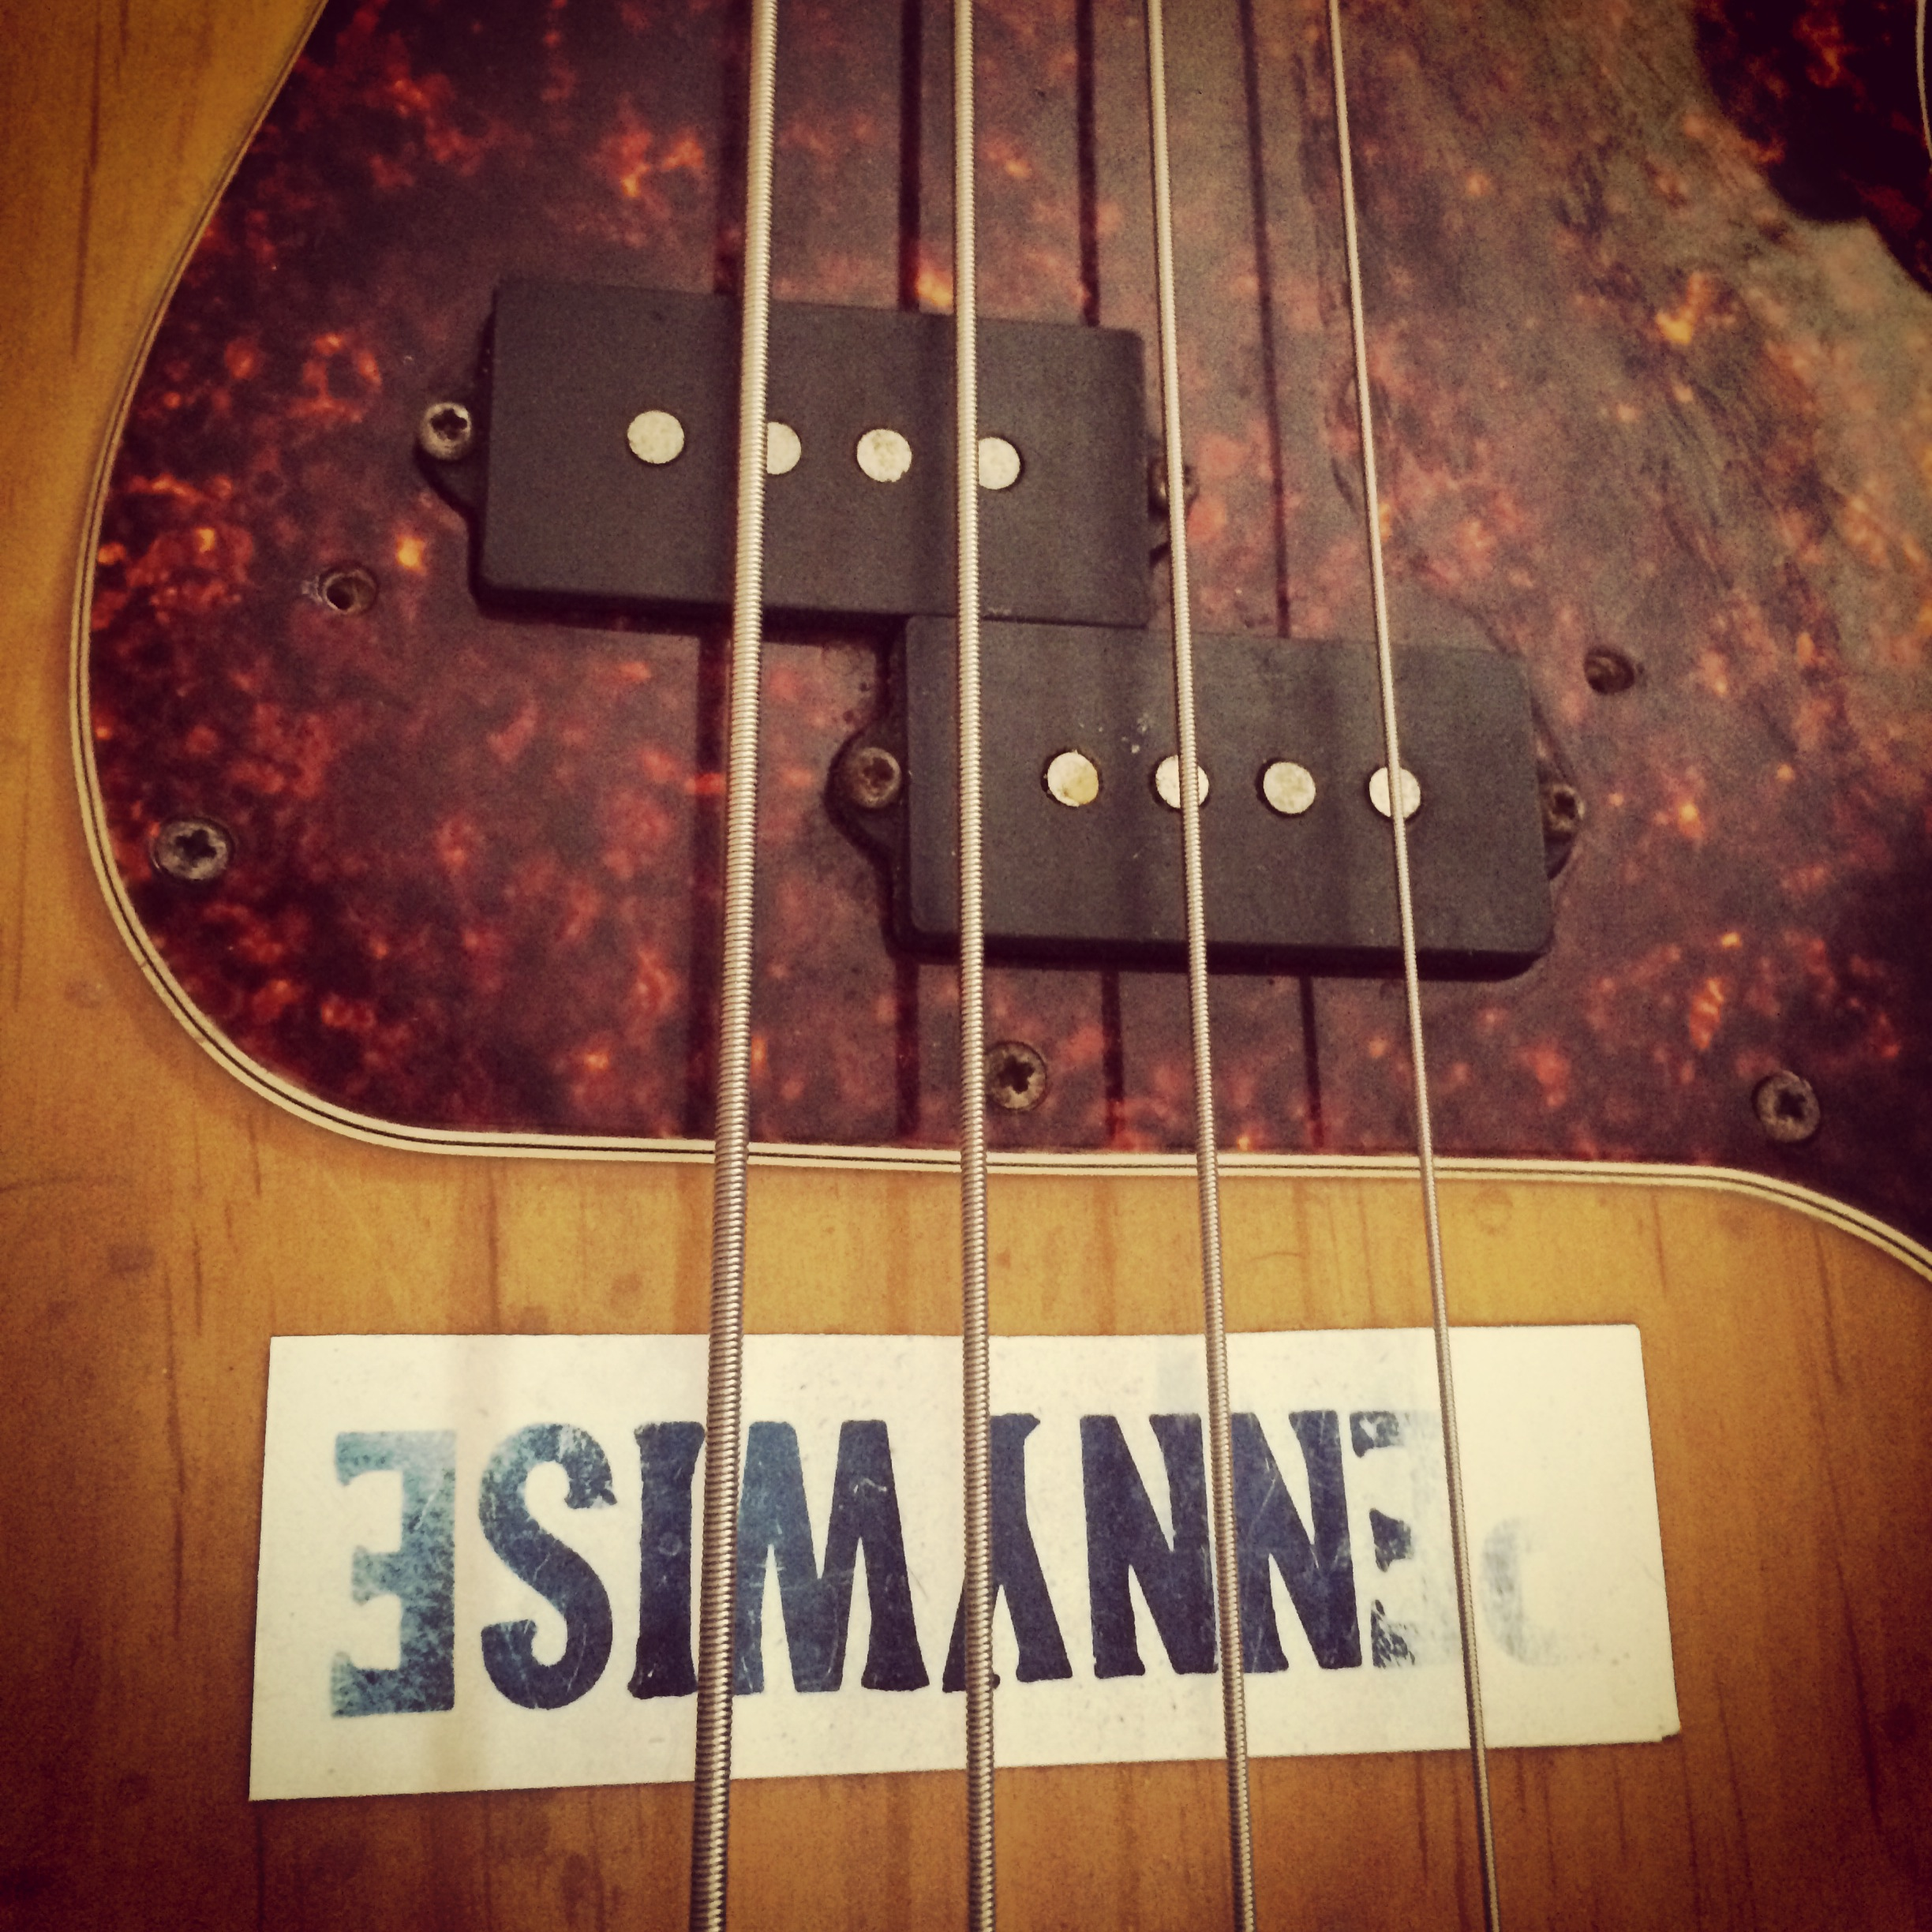 The legendary Vintage 1977 bass